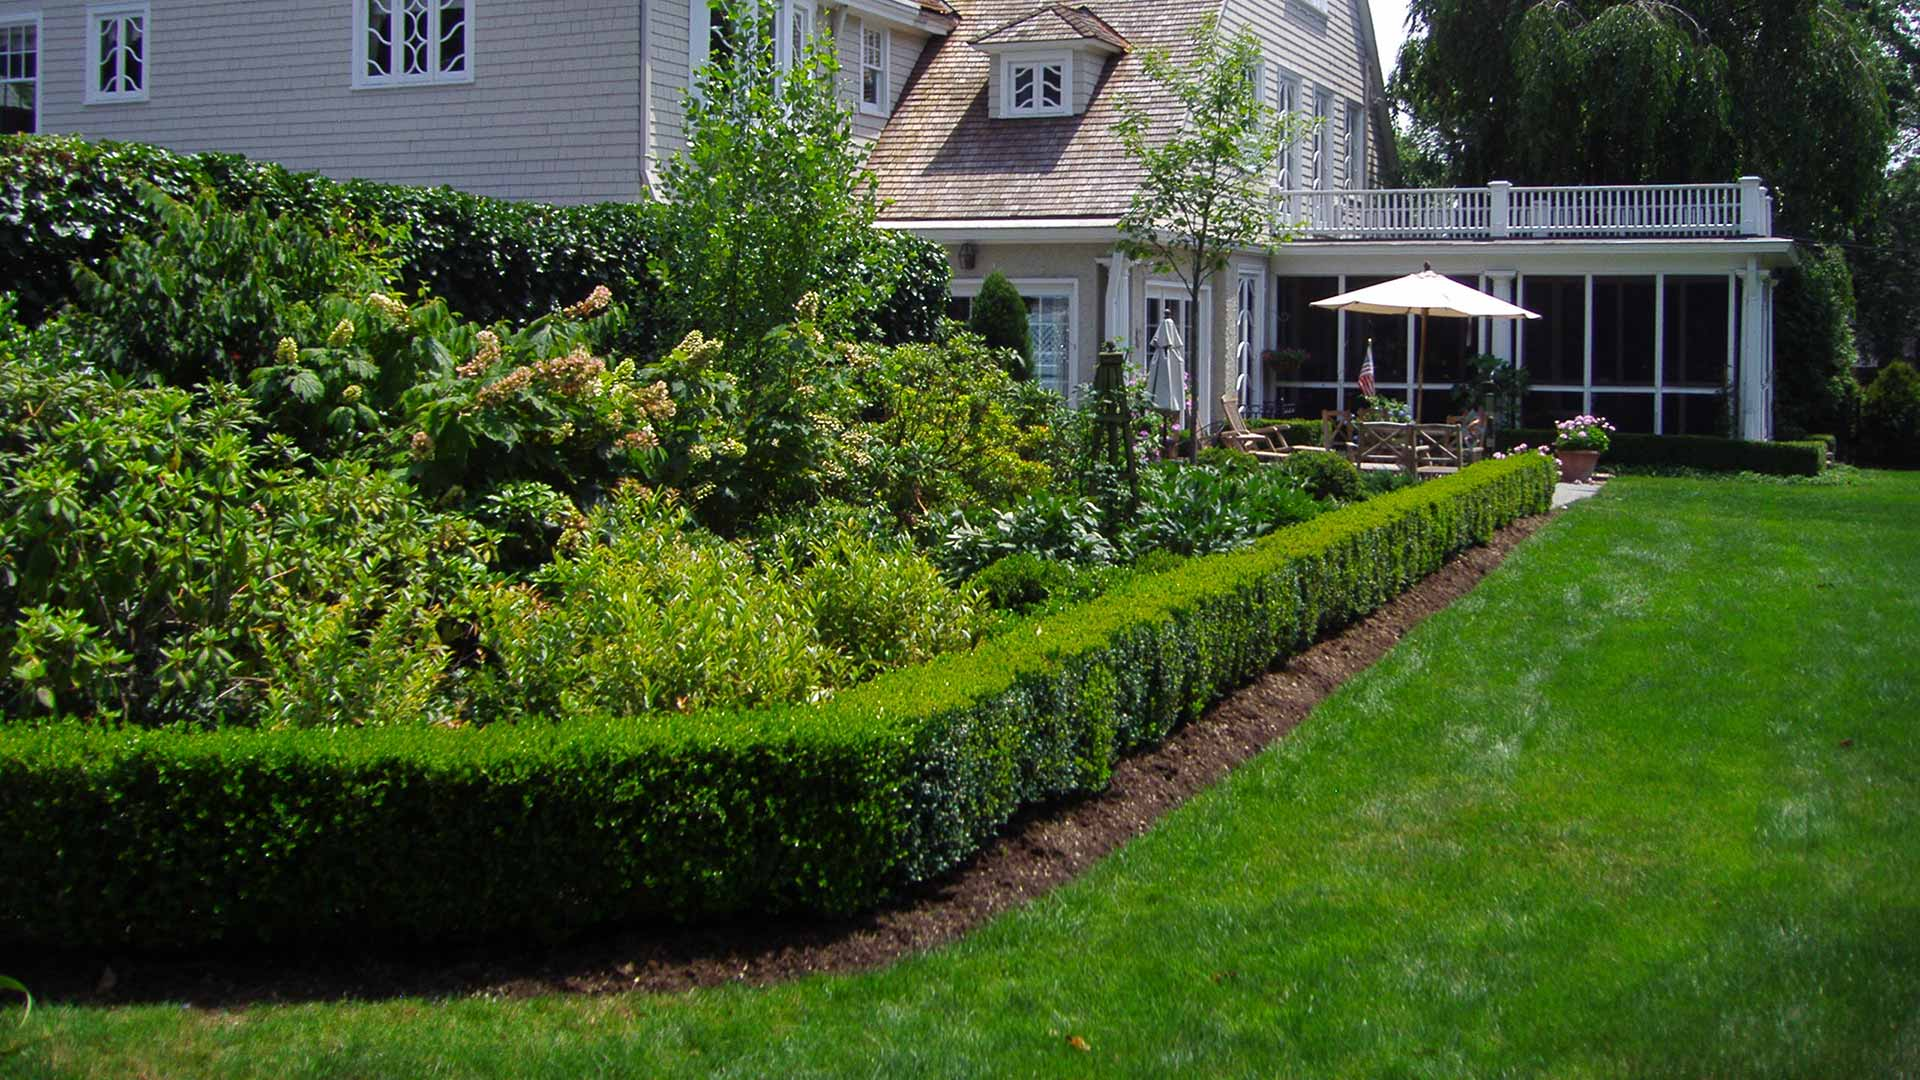 Healthy home lawn and maintained landscaping in Springfield Township, NJ.